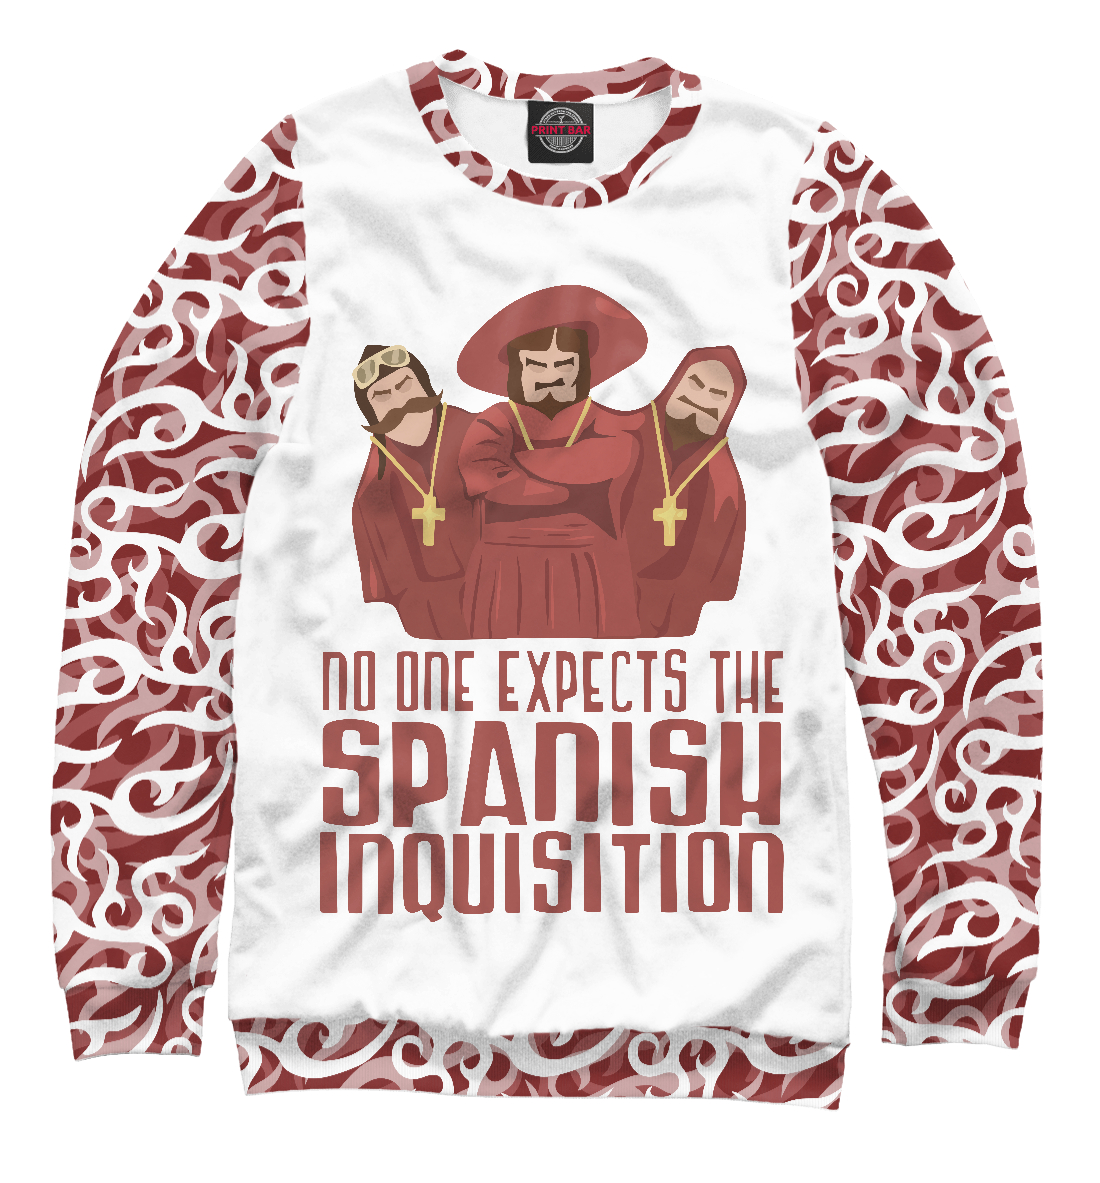 spanish No one expects the Spanish inquisition